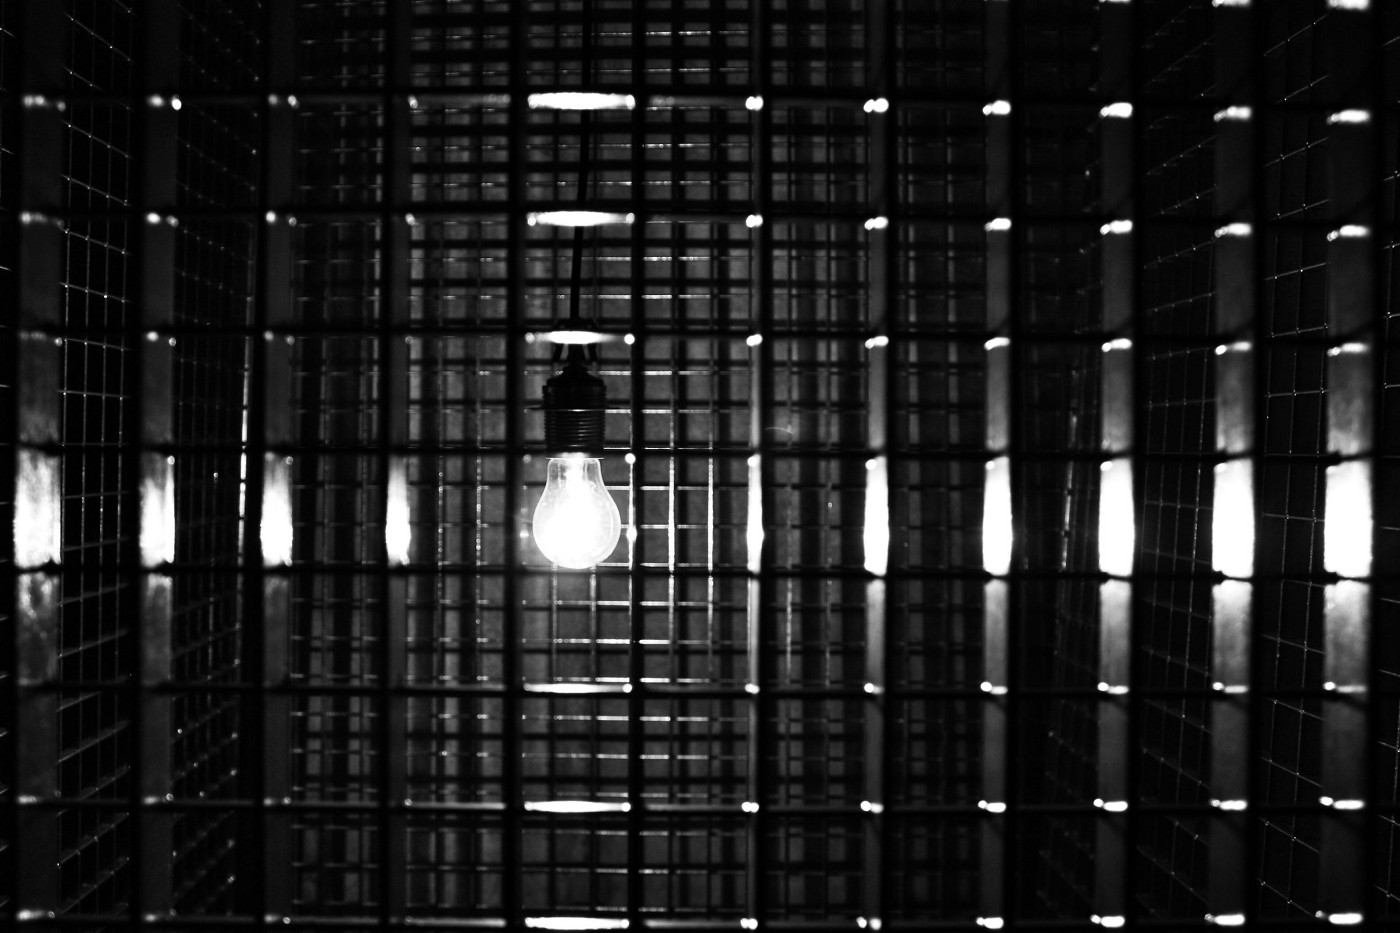 A black and white photo of a light bulb in a cell.